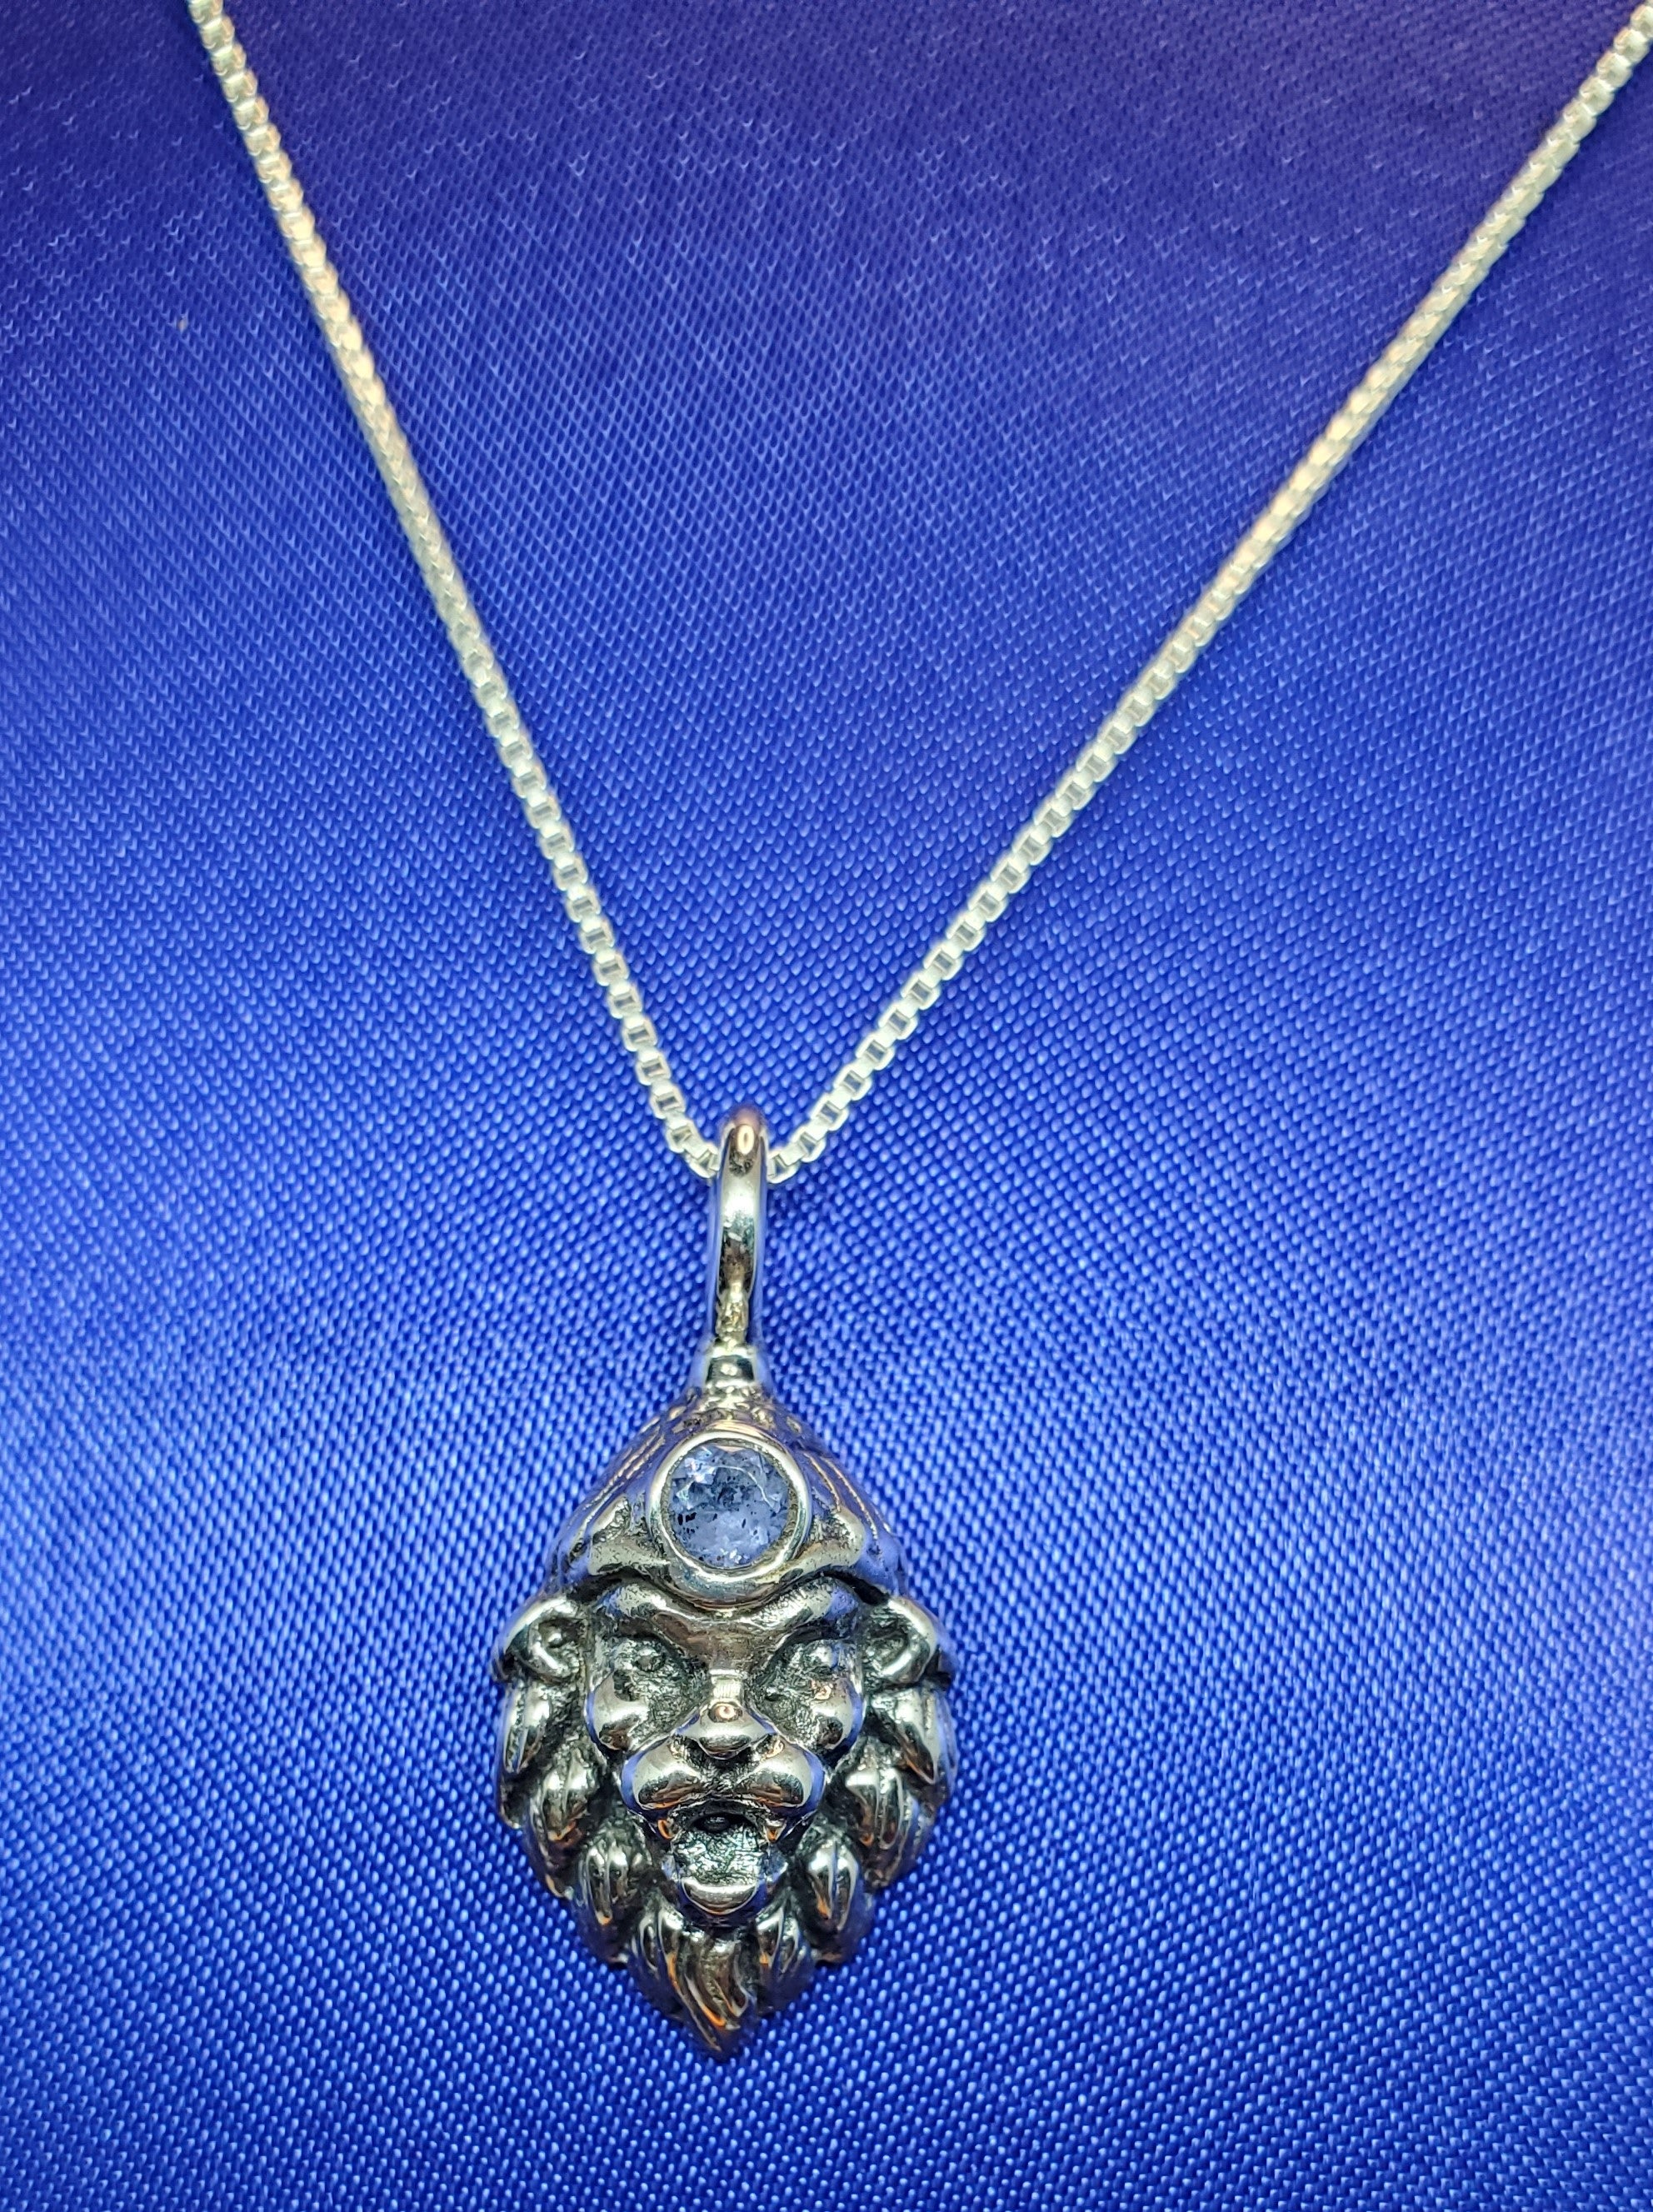 Lord Narasimha Pendant with Blue Lolite